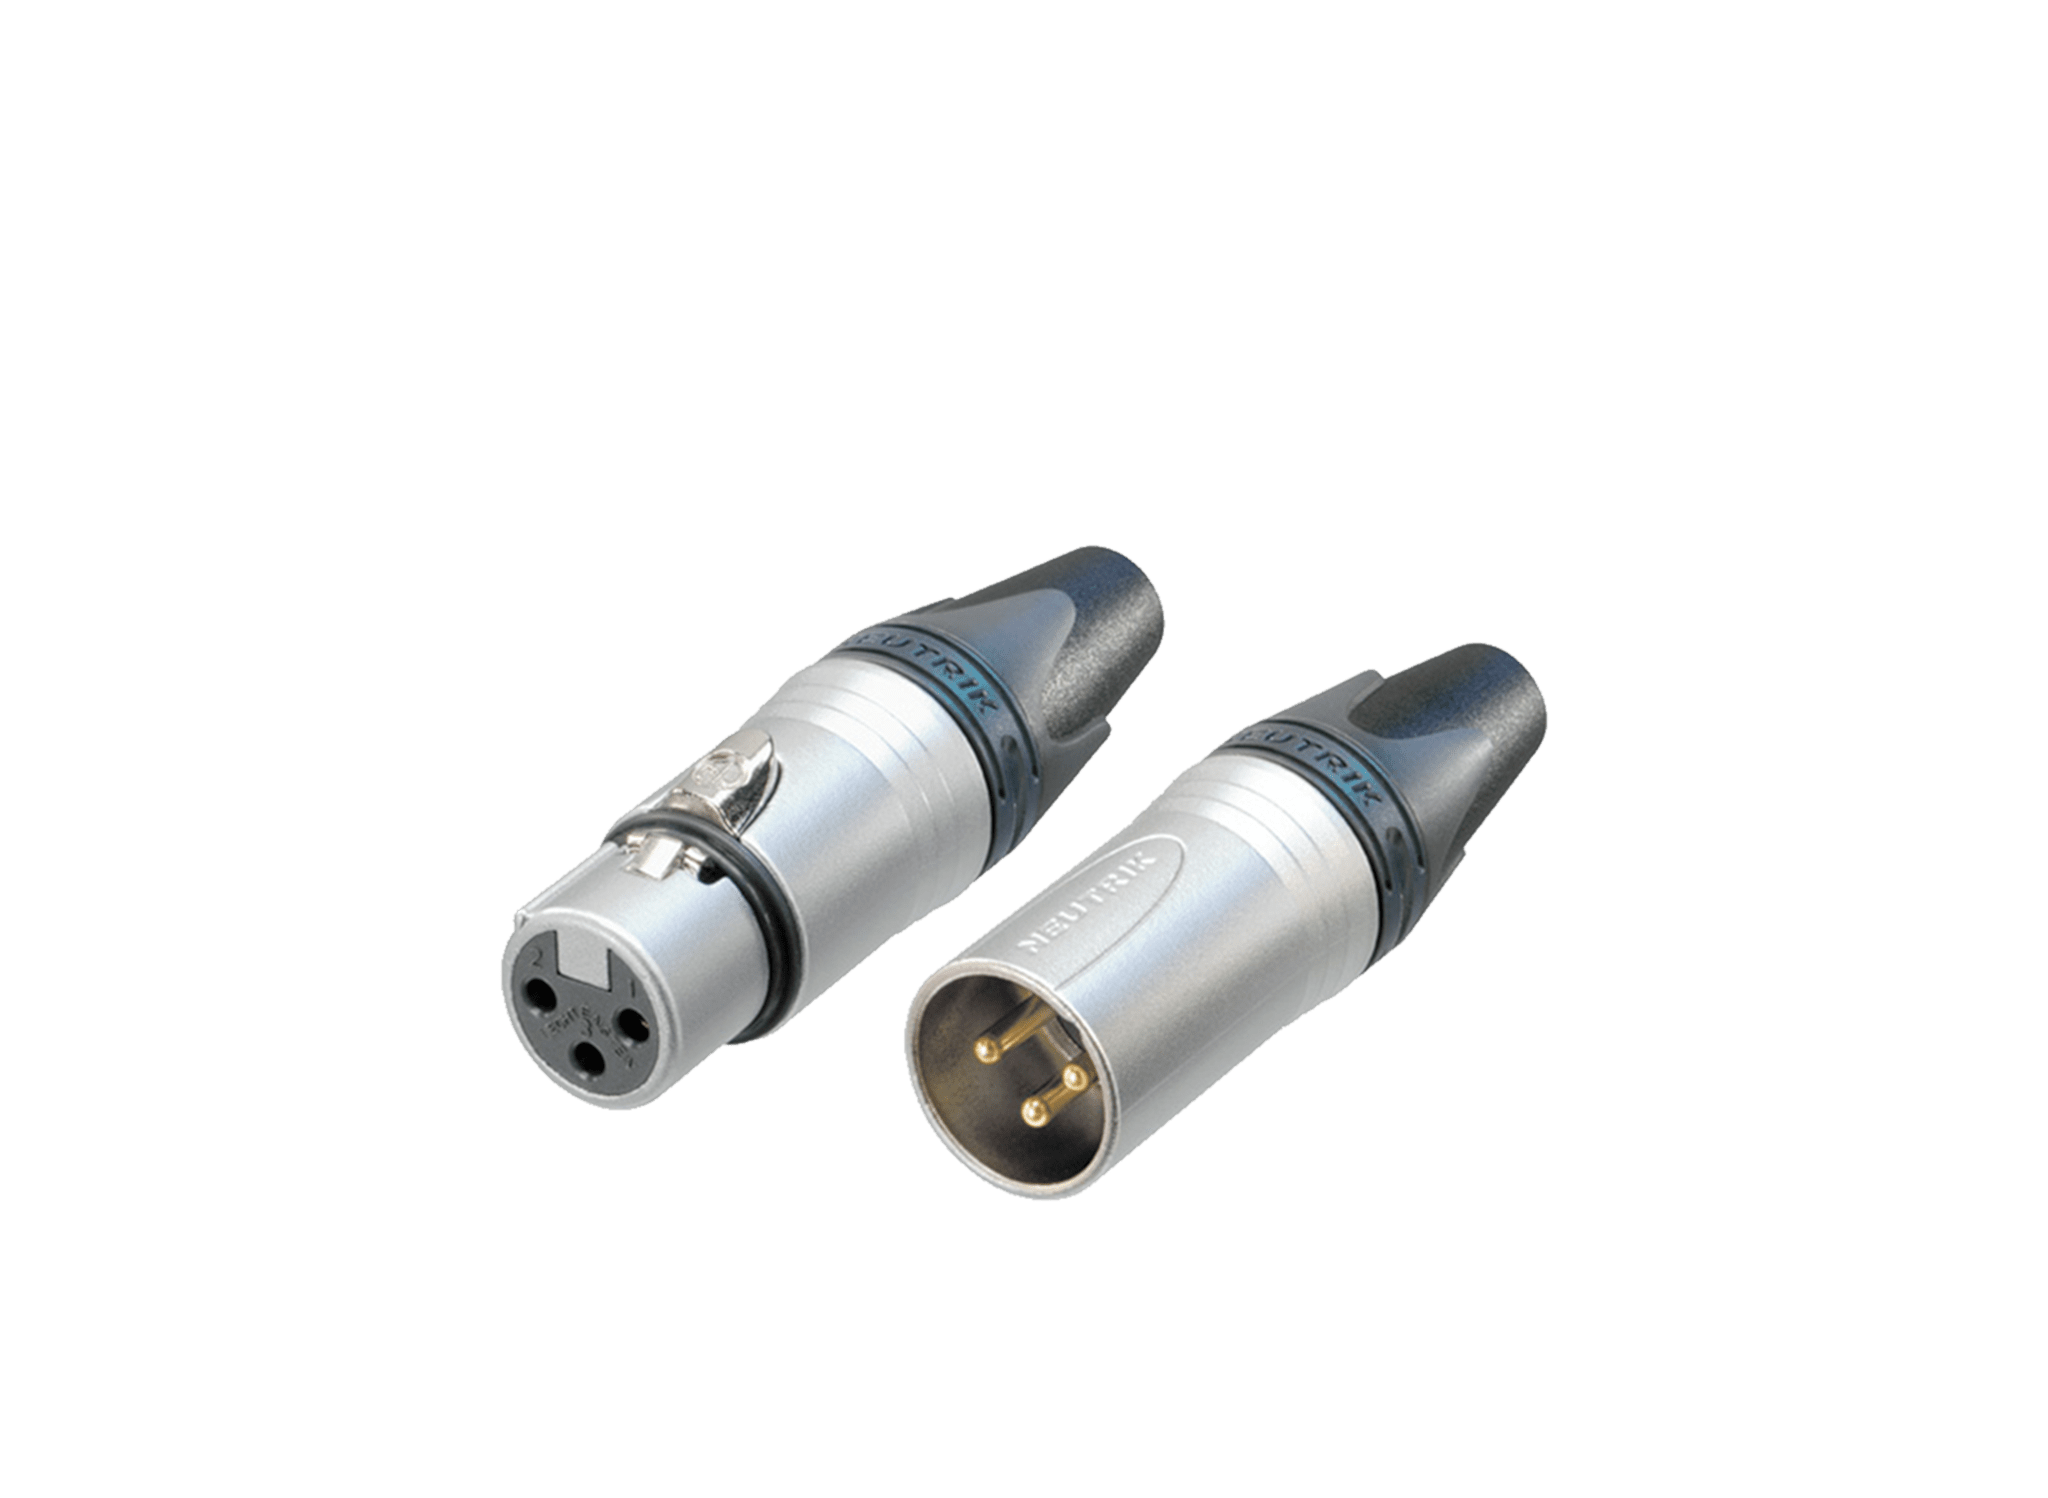 XLR cable connectors -